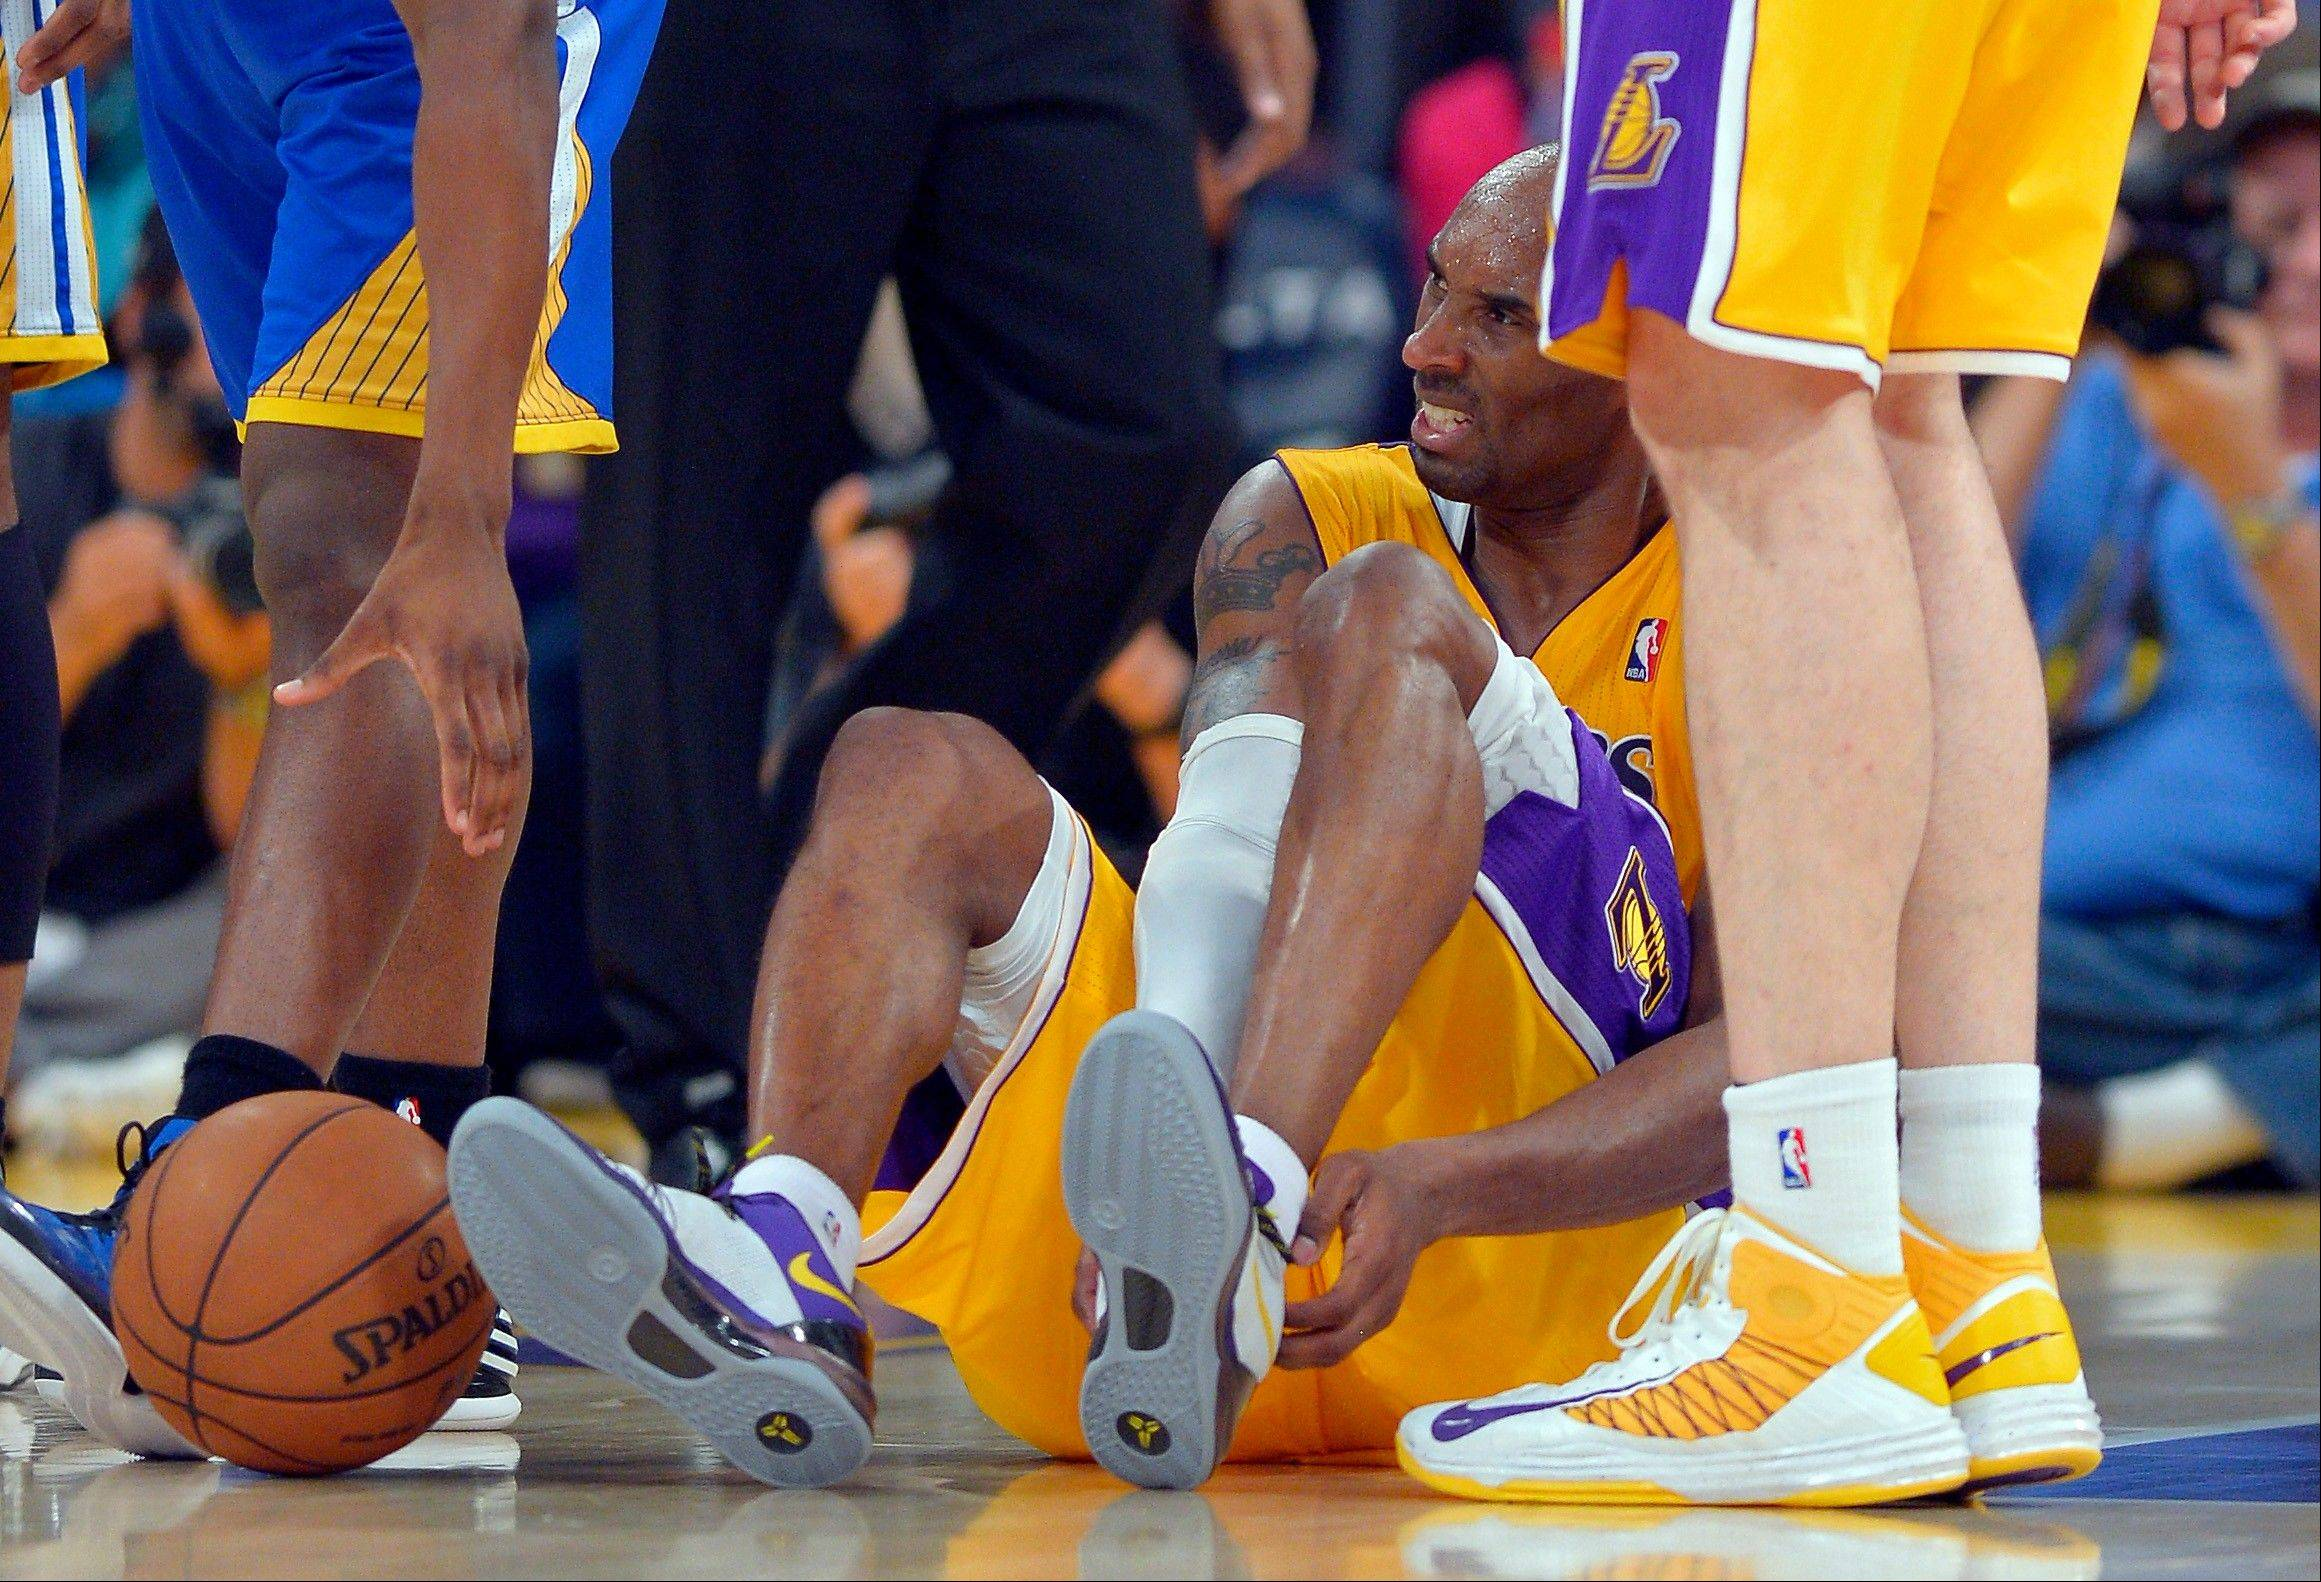 Kobe Bryant grimaces after rupturing his Achilles' tendon Friday. Bryant will be out 6-9 months.